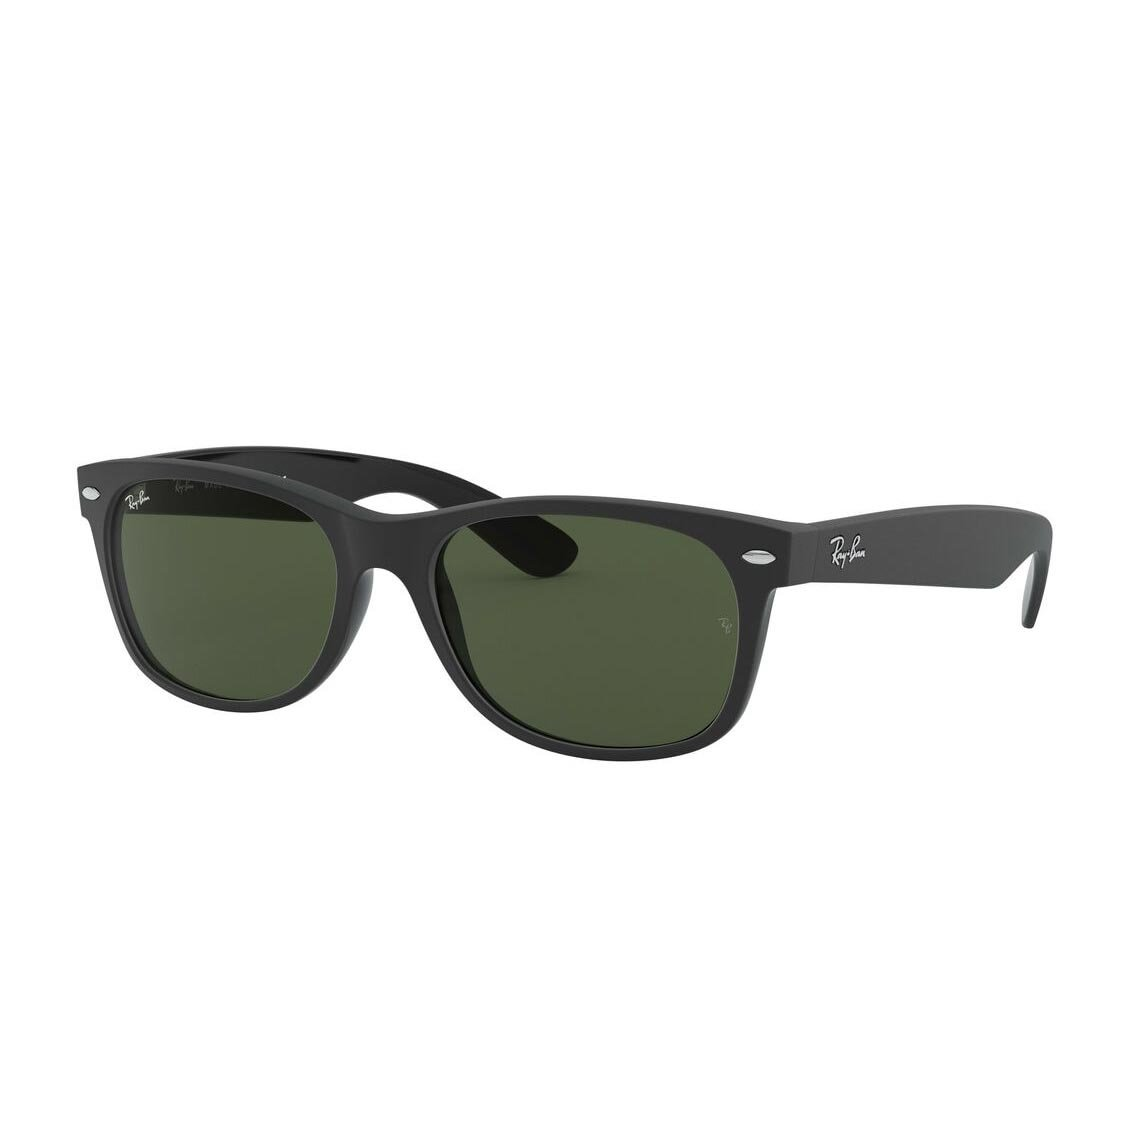 Ray-Ban New Wayfarer RB2132 646231 5518